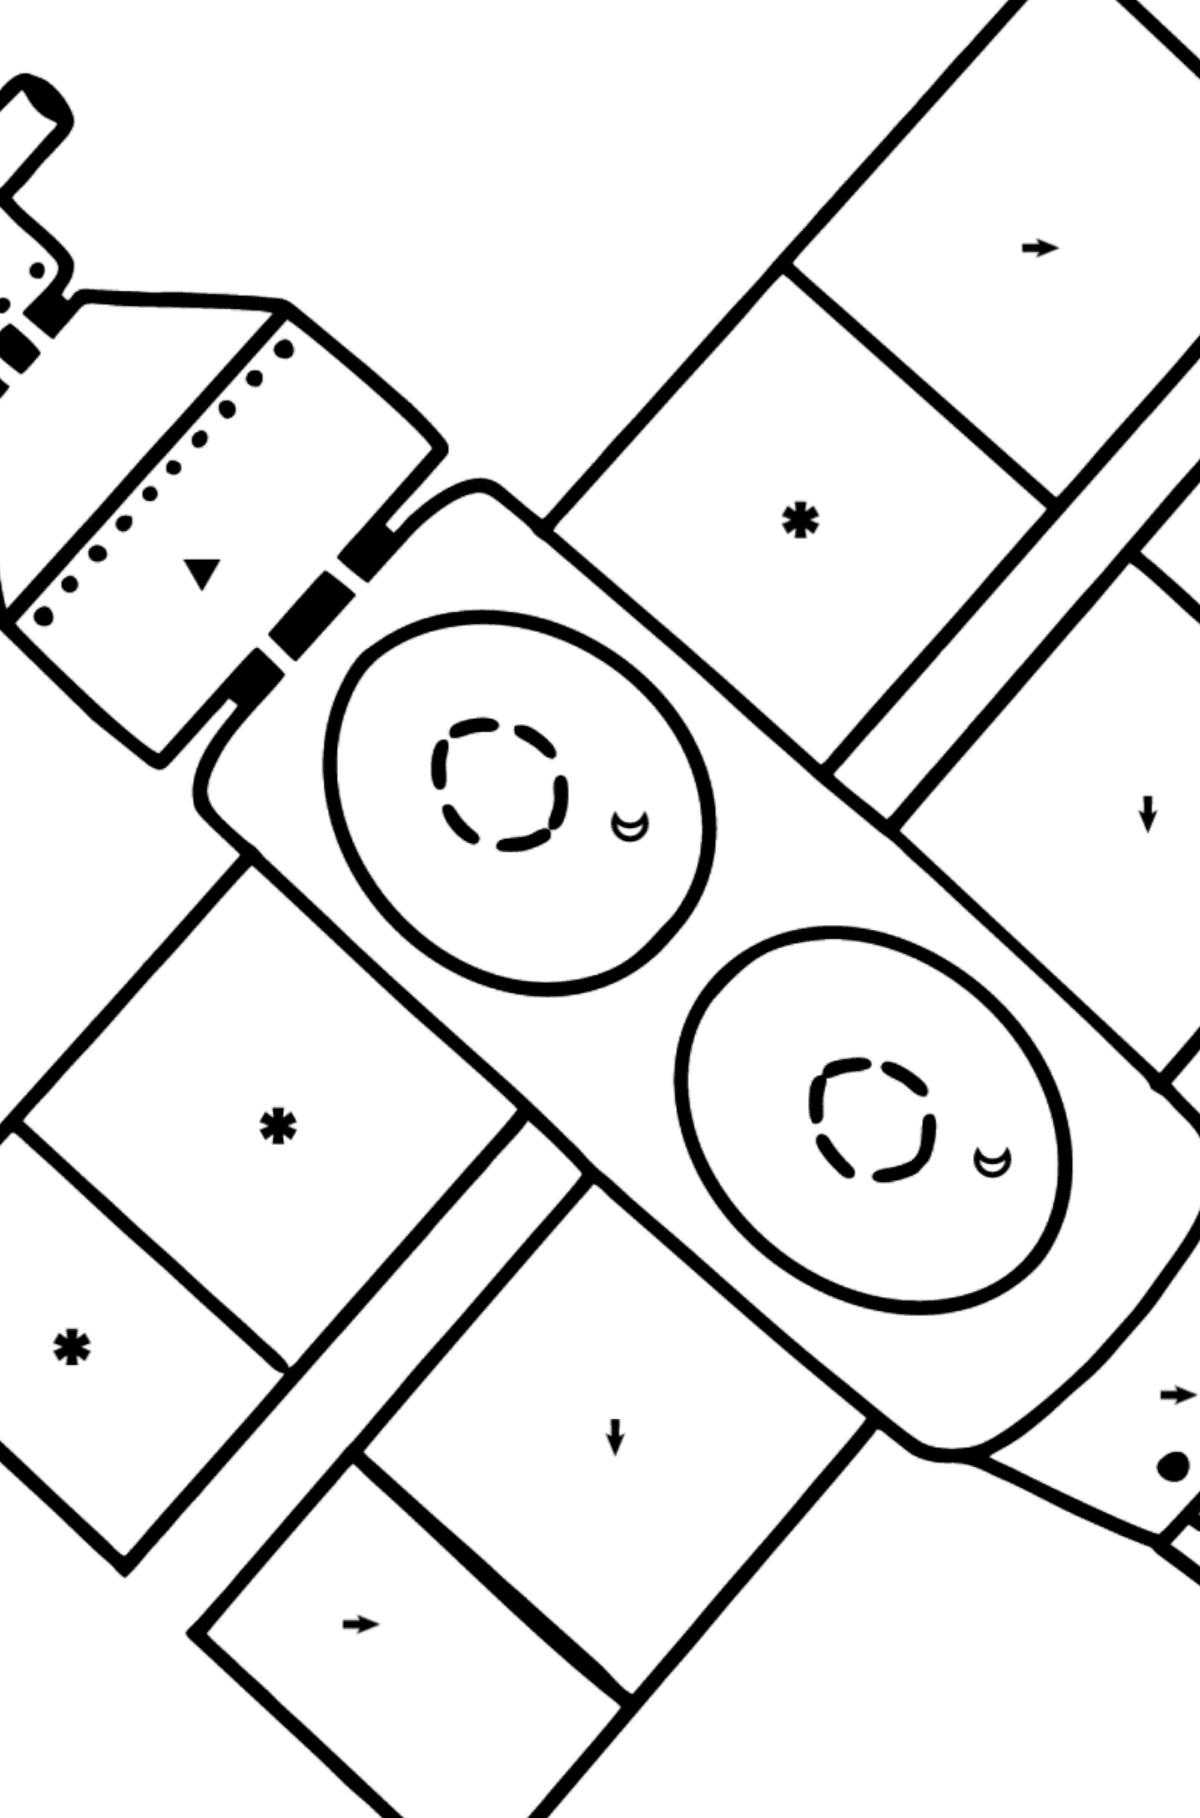 Spaceship coloring page - Coloring by Symbols for Kids